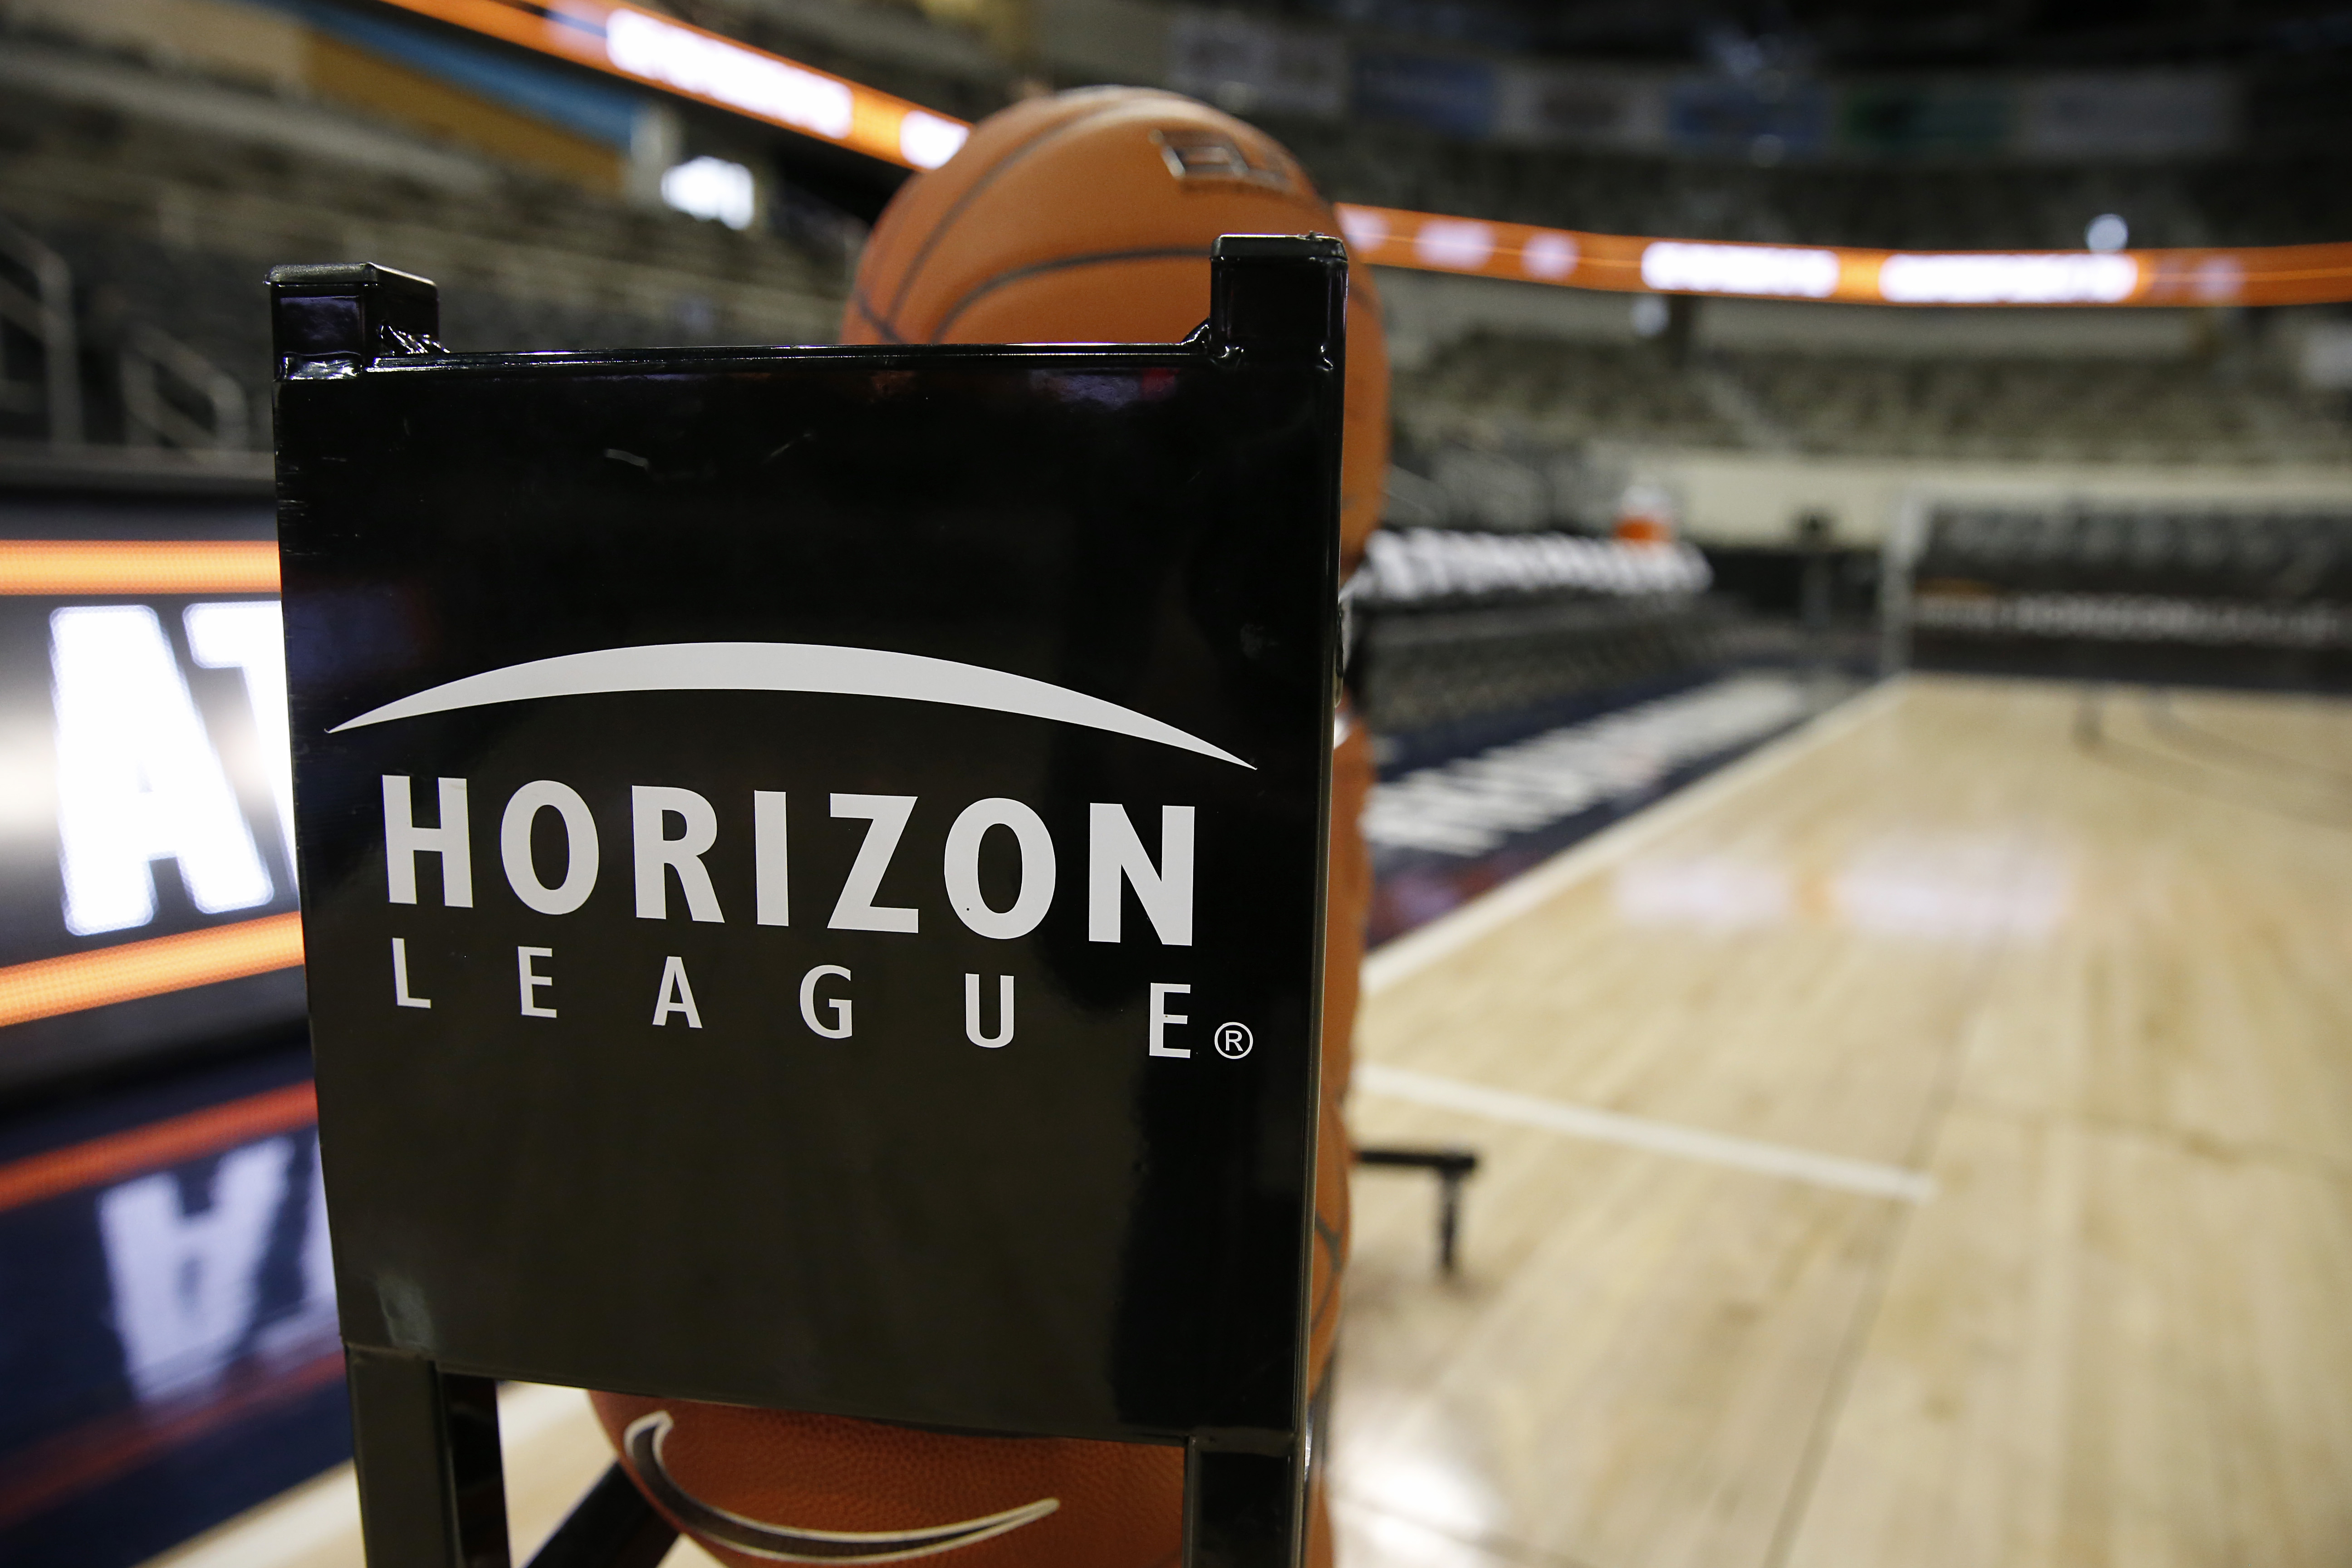 The Horizon League logo on the basketball rack at the Horizon League Basketball Championships at Indiana Farmers Coliseum on March 10, 2020 in Indianapolis, Indiana.